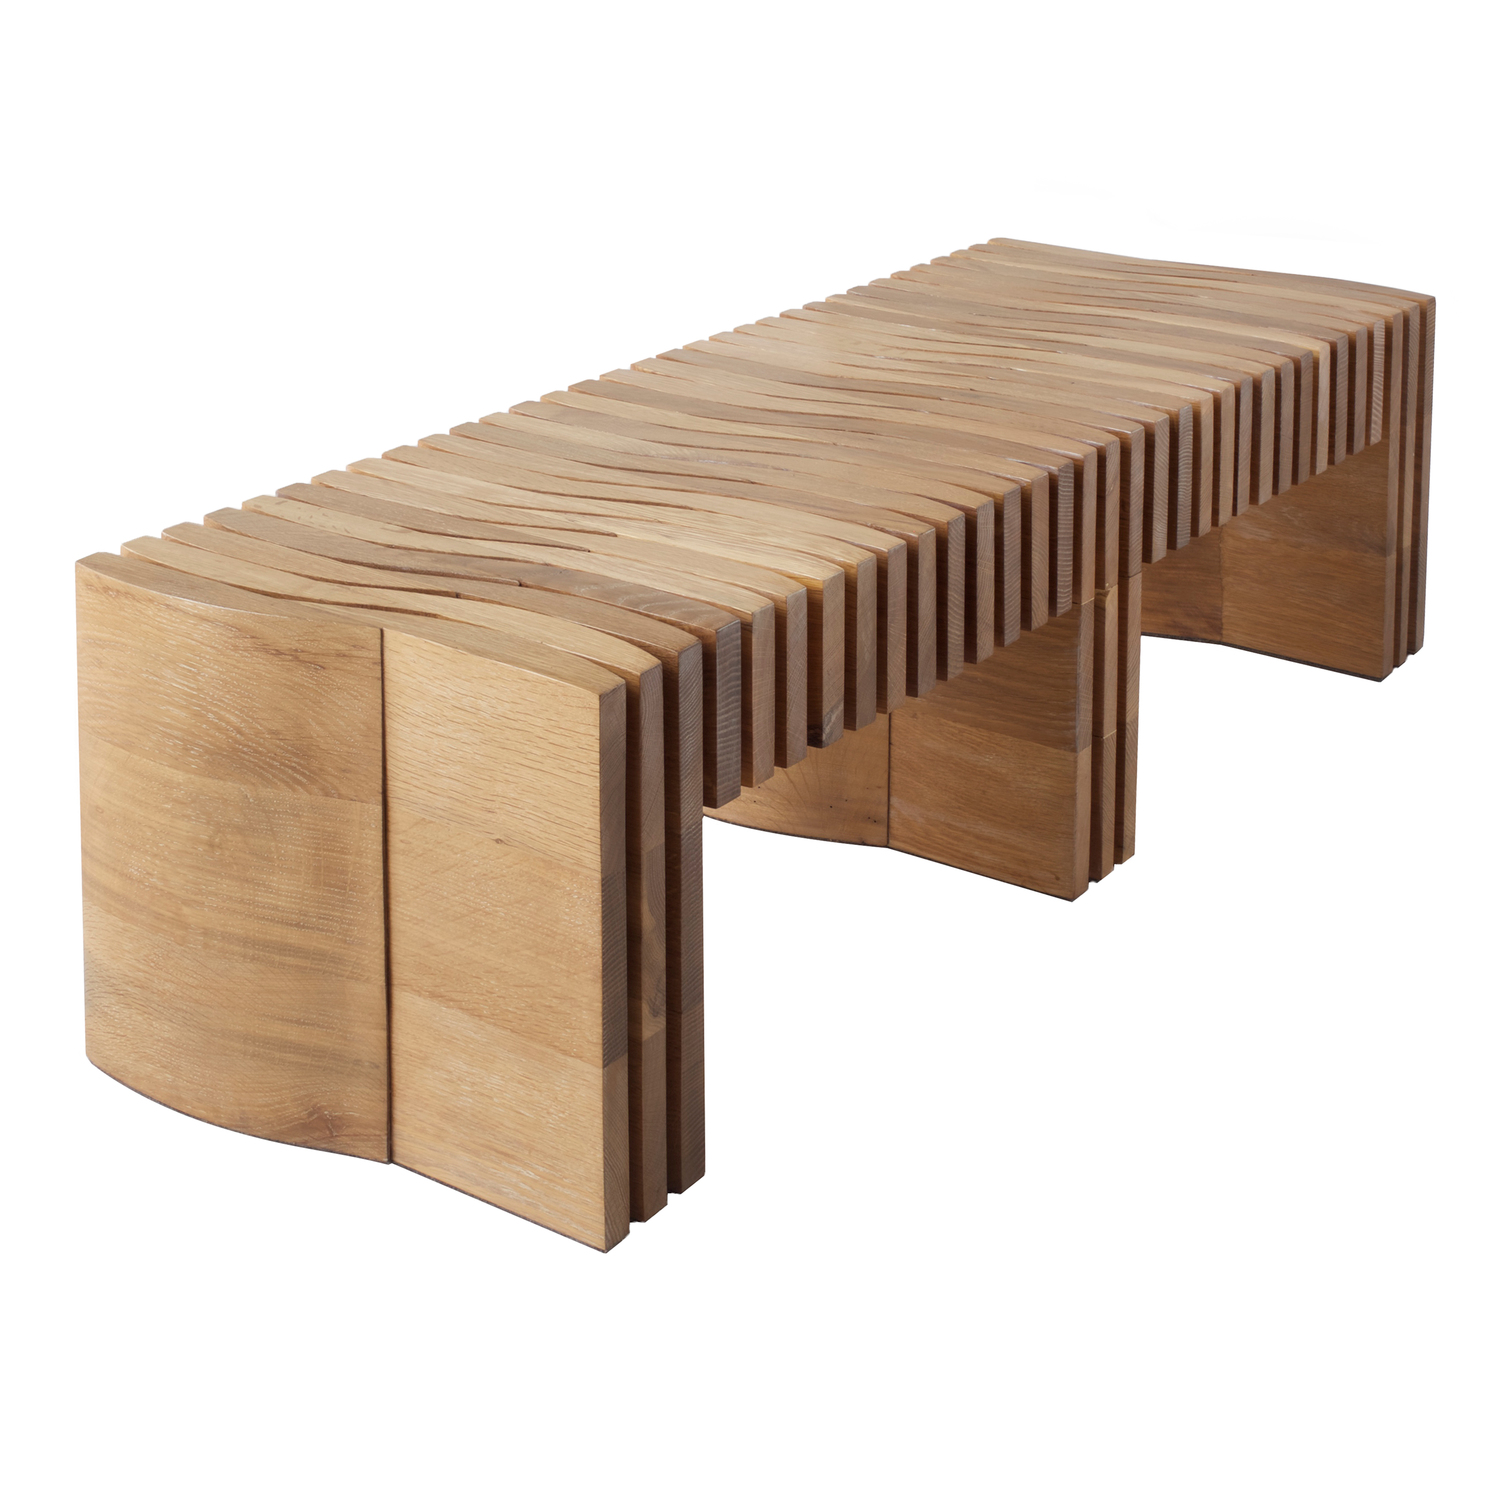 Greta de parry synthesis bench isometric